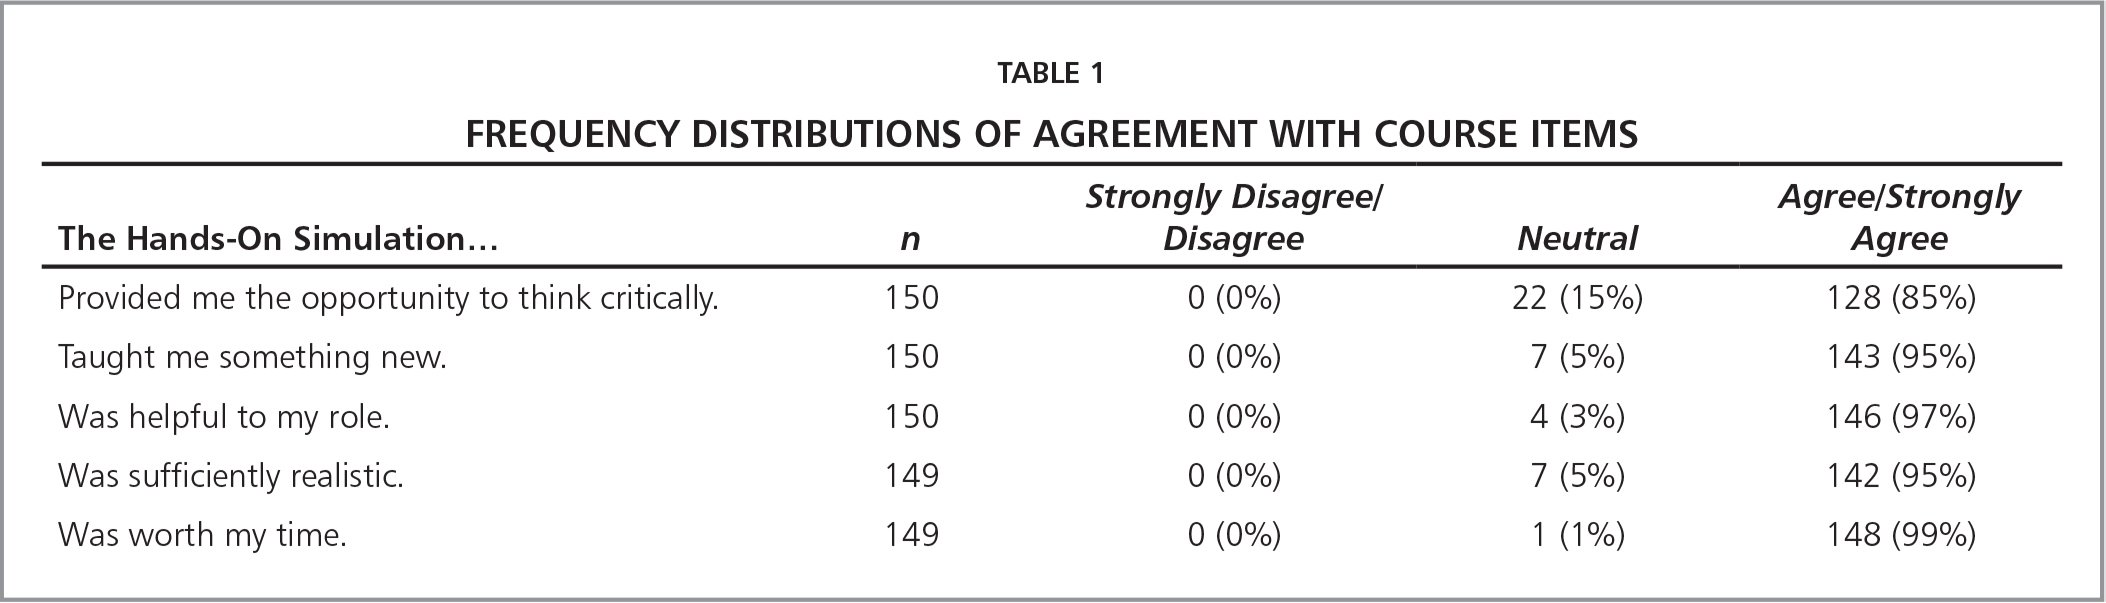 Frequency Distributions of Agreement with Course Items